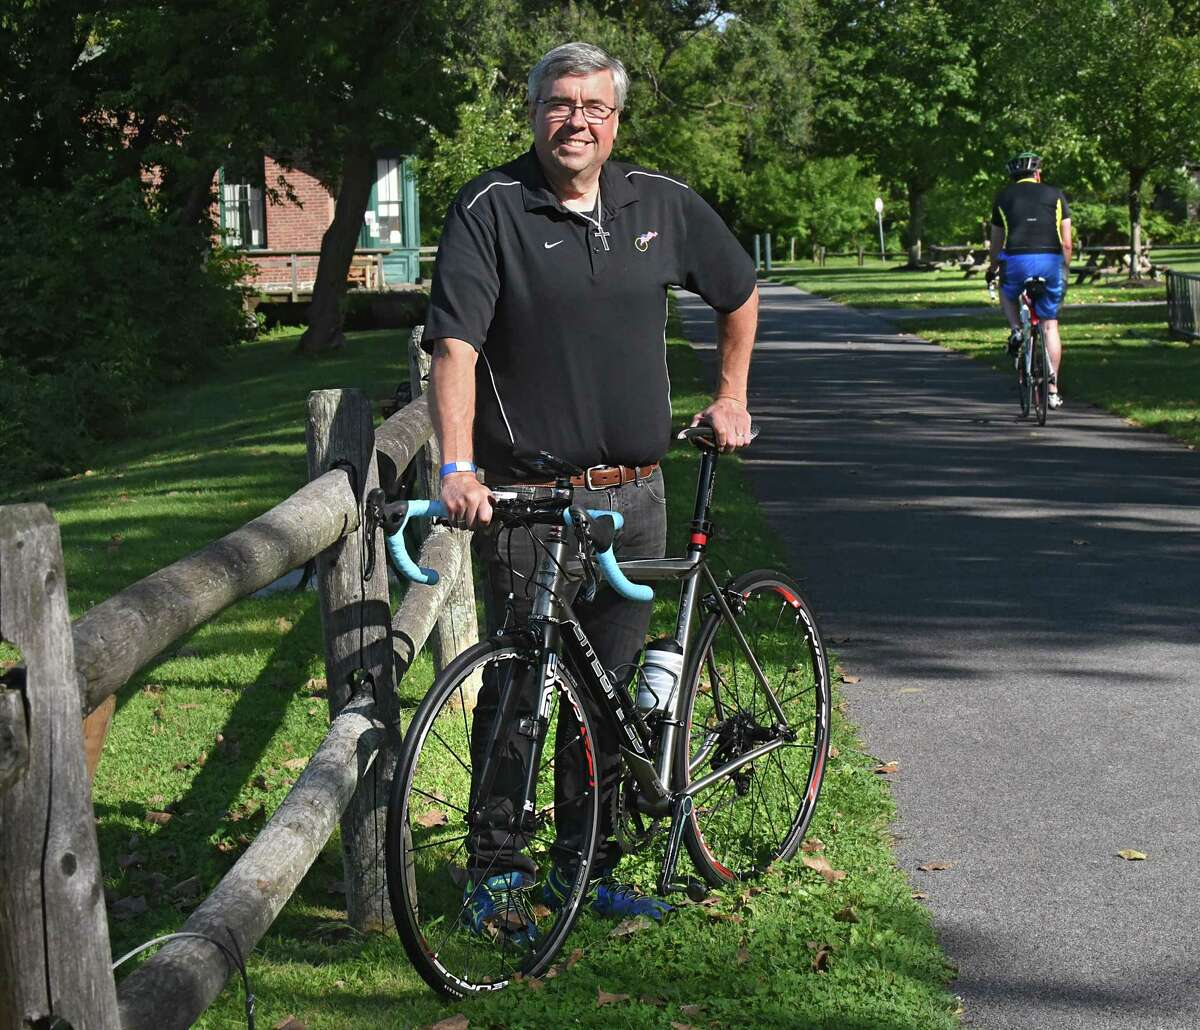 Bill Monaghan, a GE engineer who designs 3D printers, stands with one of his favorite bikes at Lions Park on Thursday, Aug. 24, 2017 in Niskayuna, N.Y. He coaches diabetics for a fundraising ride from Saratoga to Lake George. (Lori Van Buren / Times Union)